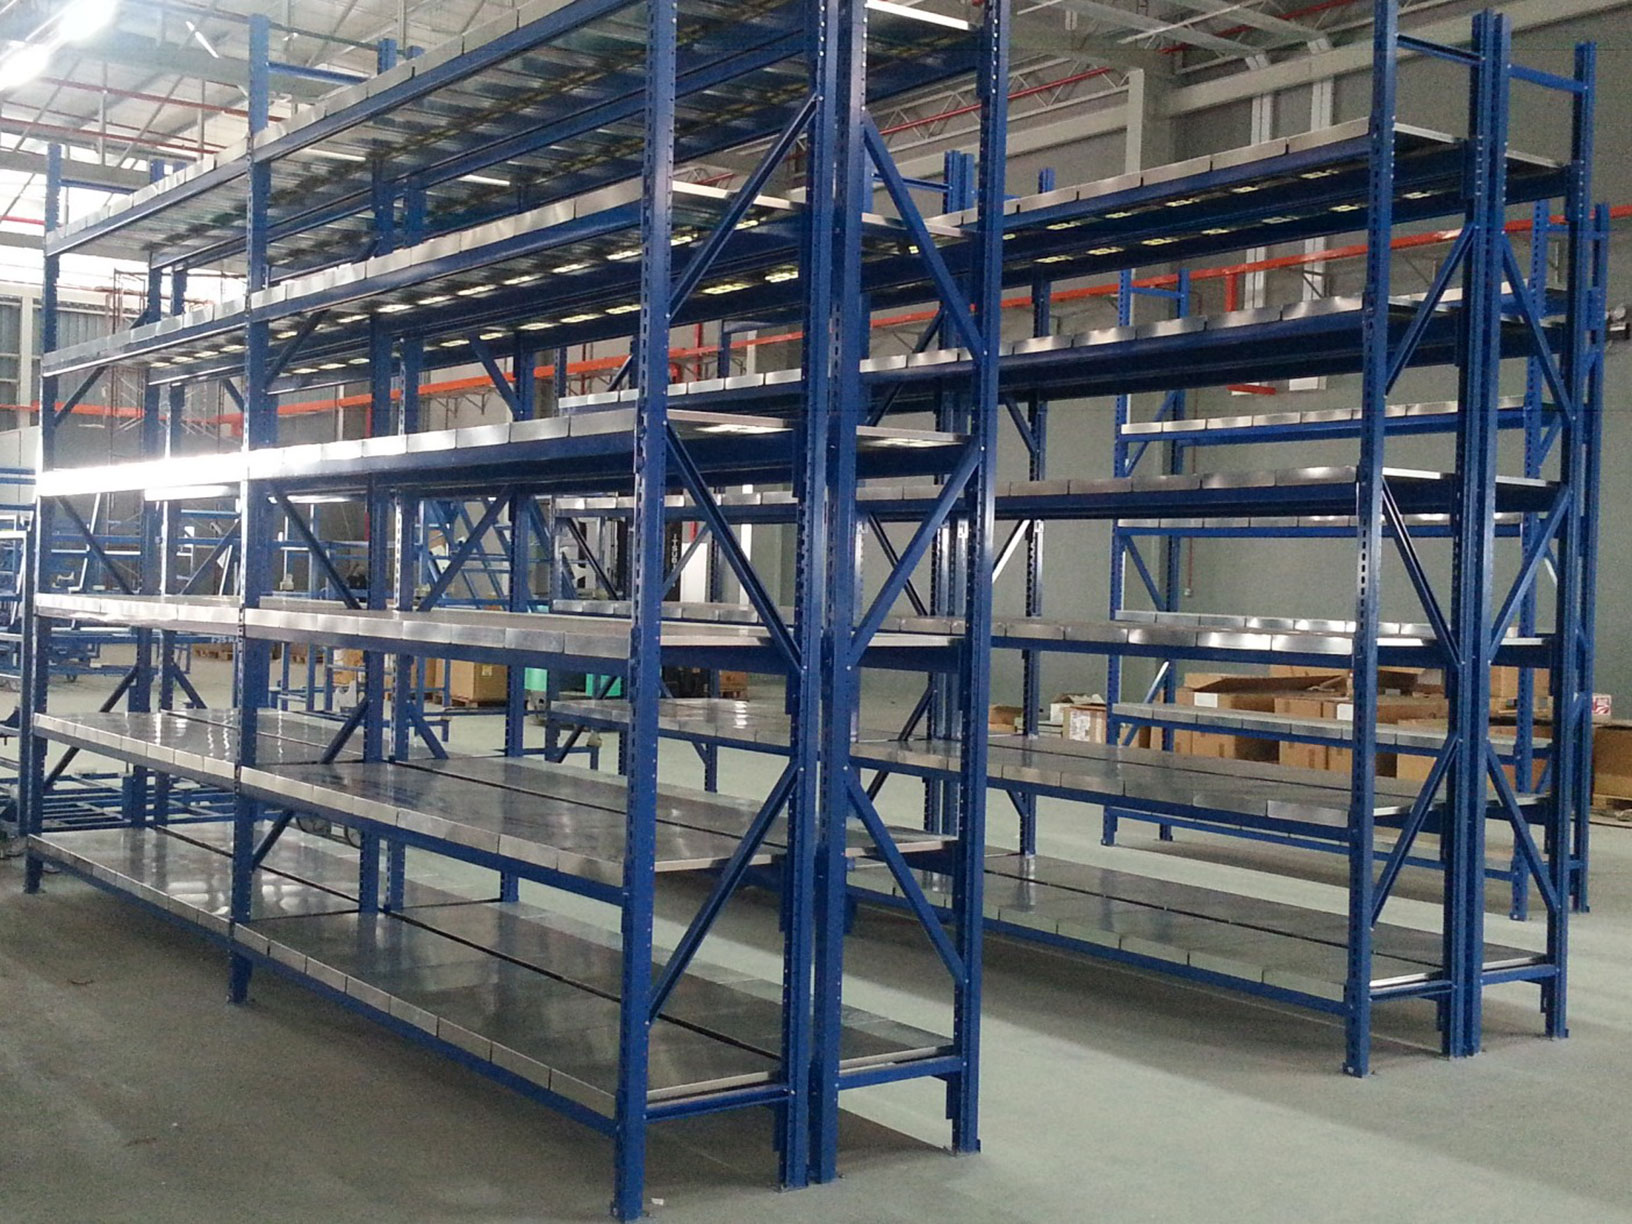 rack heavy duty shelving angle racks slotted racking pallet storage industrial